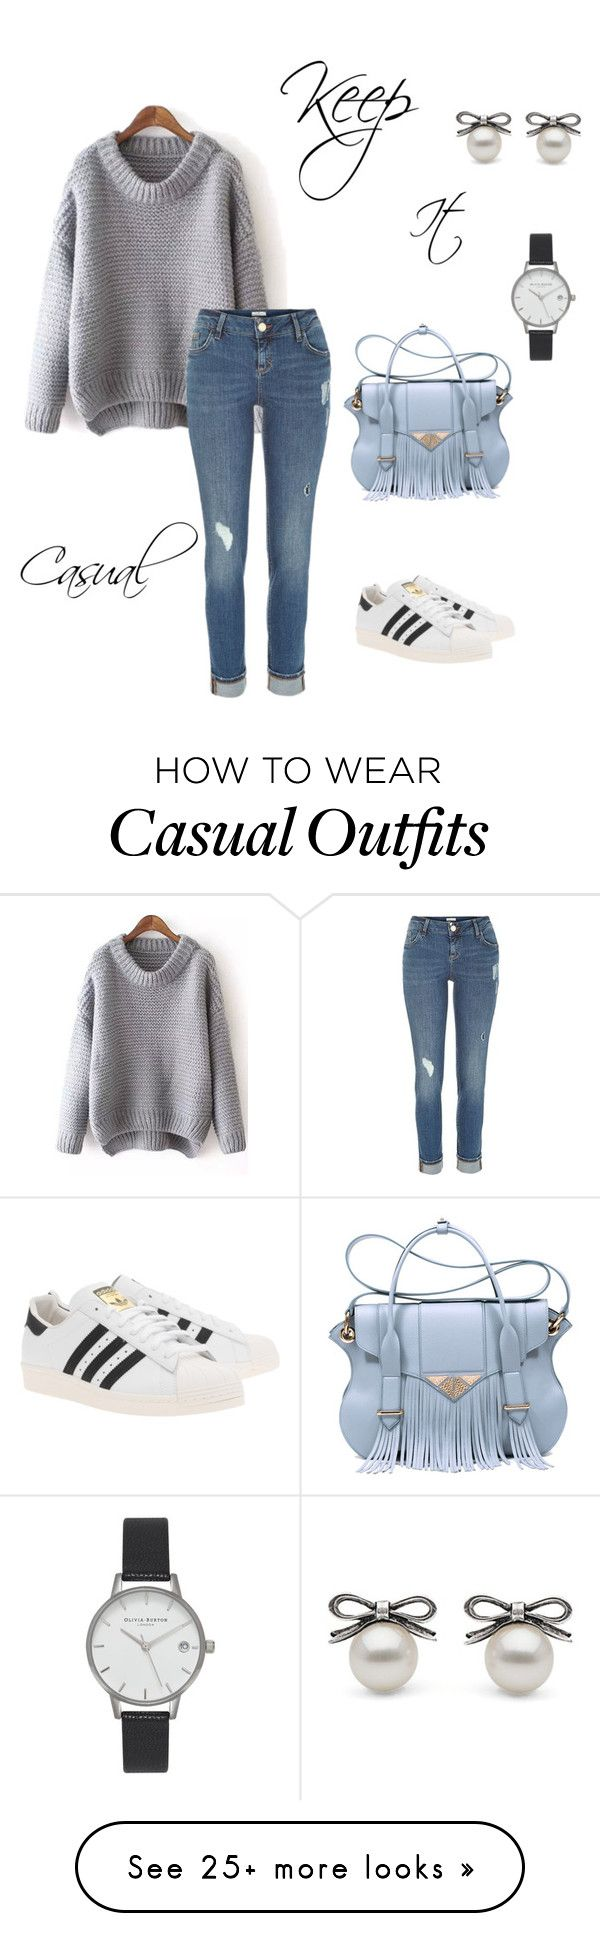 """""""Keep It Casual"""" by jessica-skye-1 on Polyvore featuring River Island, Ella Rabener, Olivia Burton and adidas Originals"""